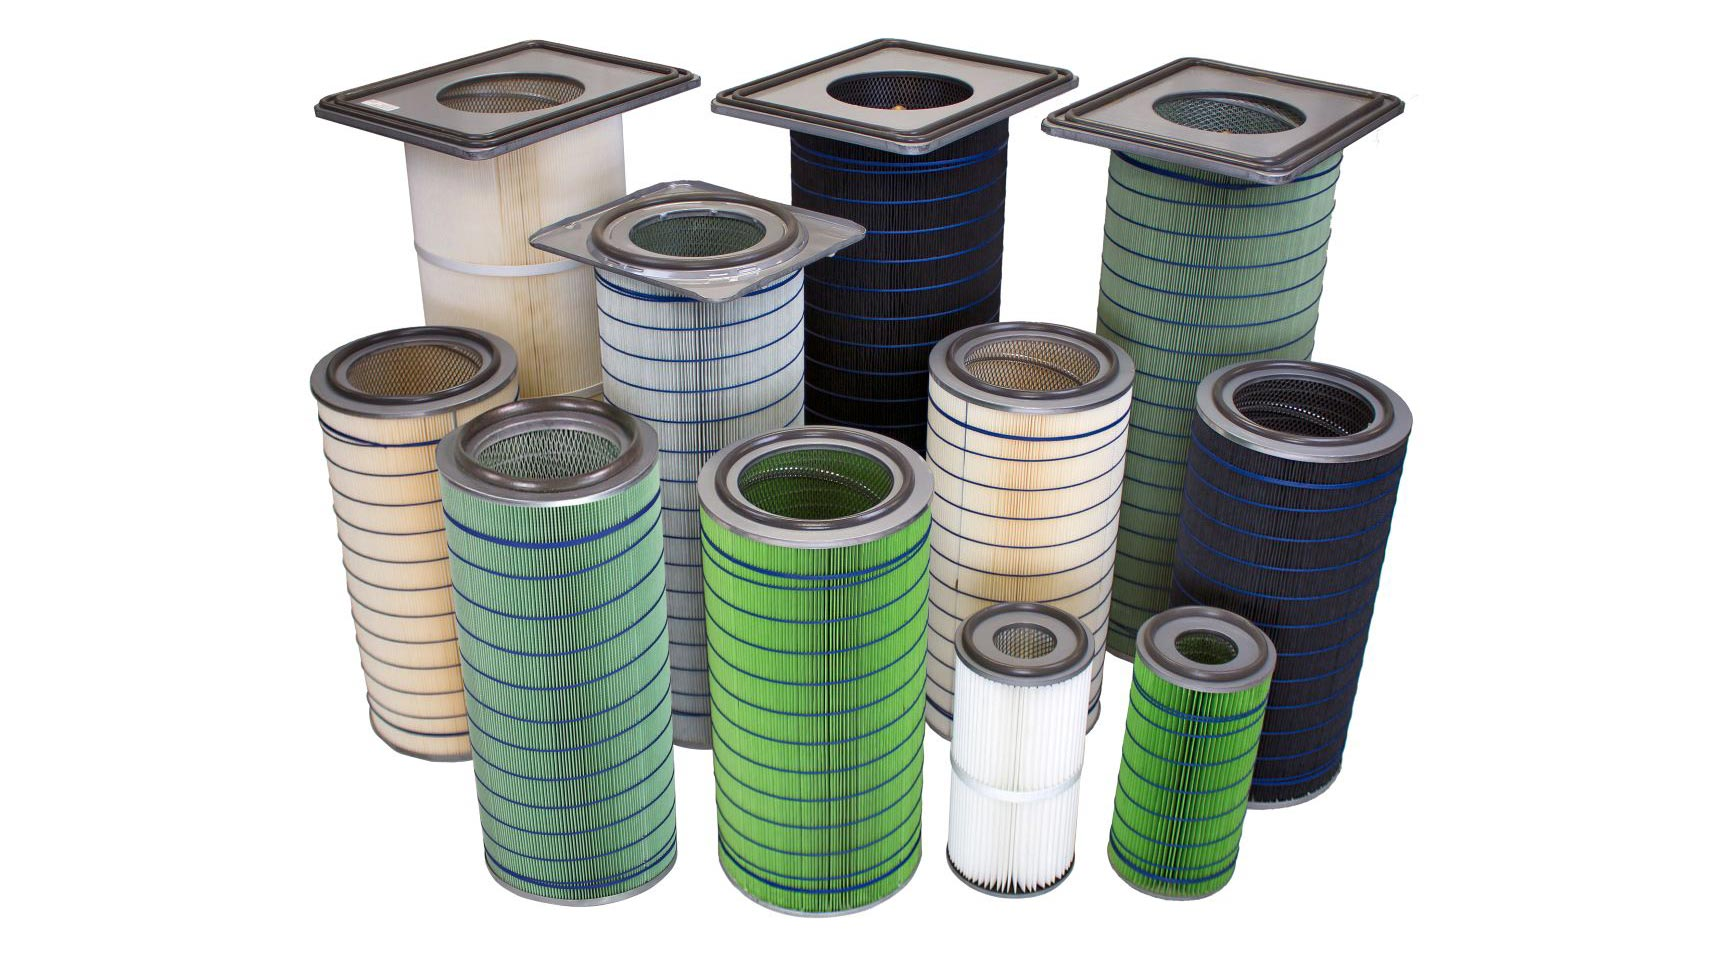 multiple different sizes of dust collector filters